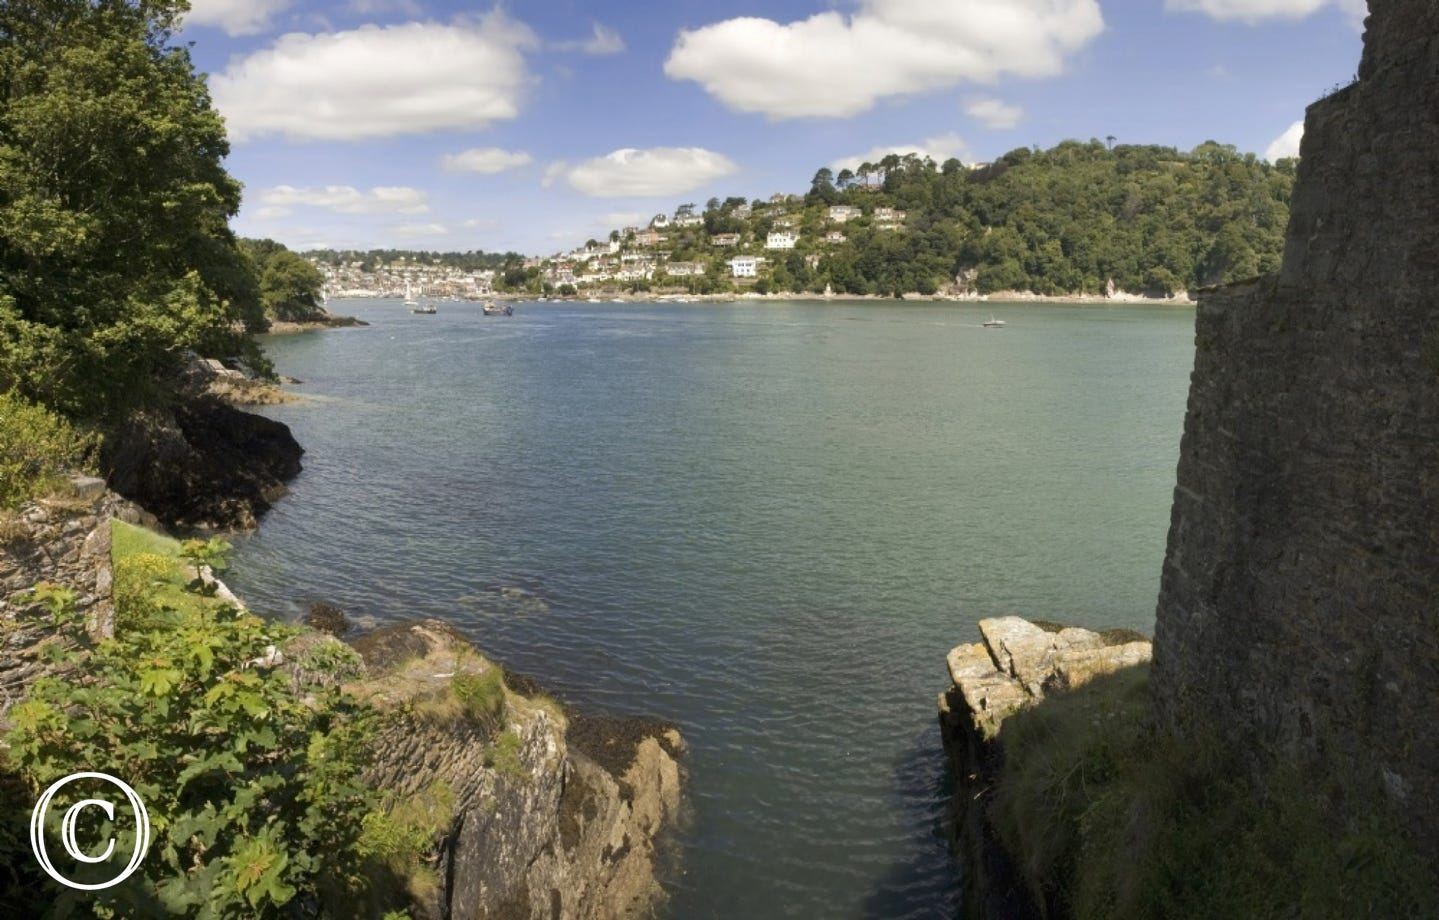 View from the Edge in Kingswear